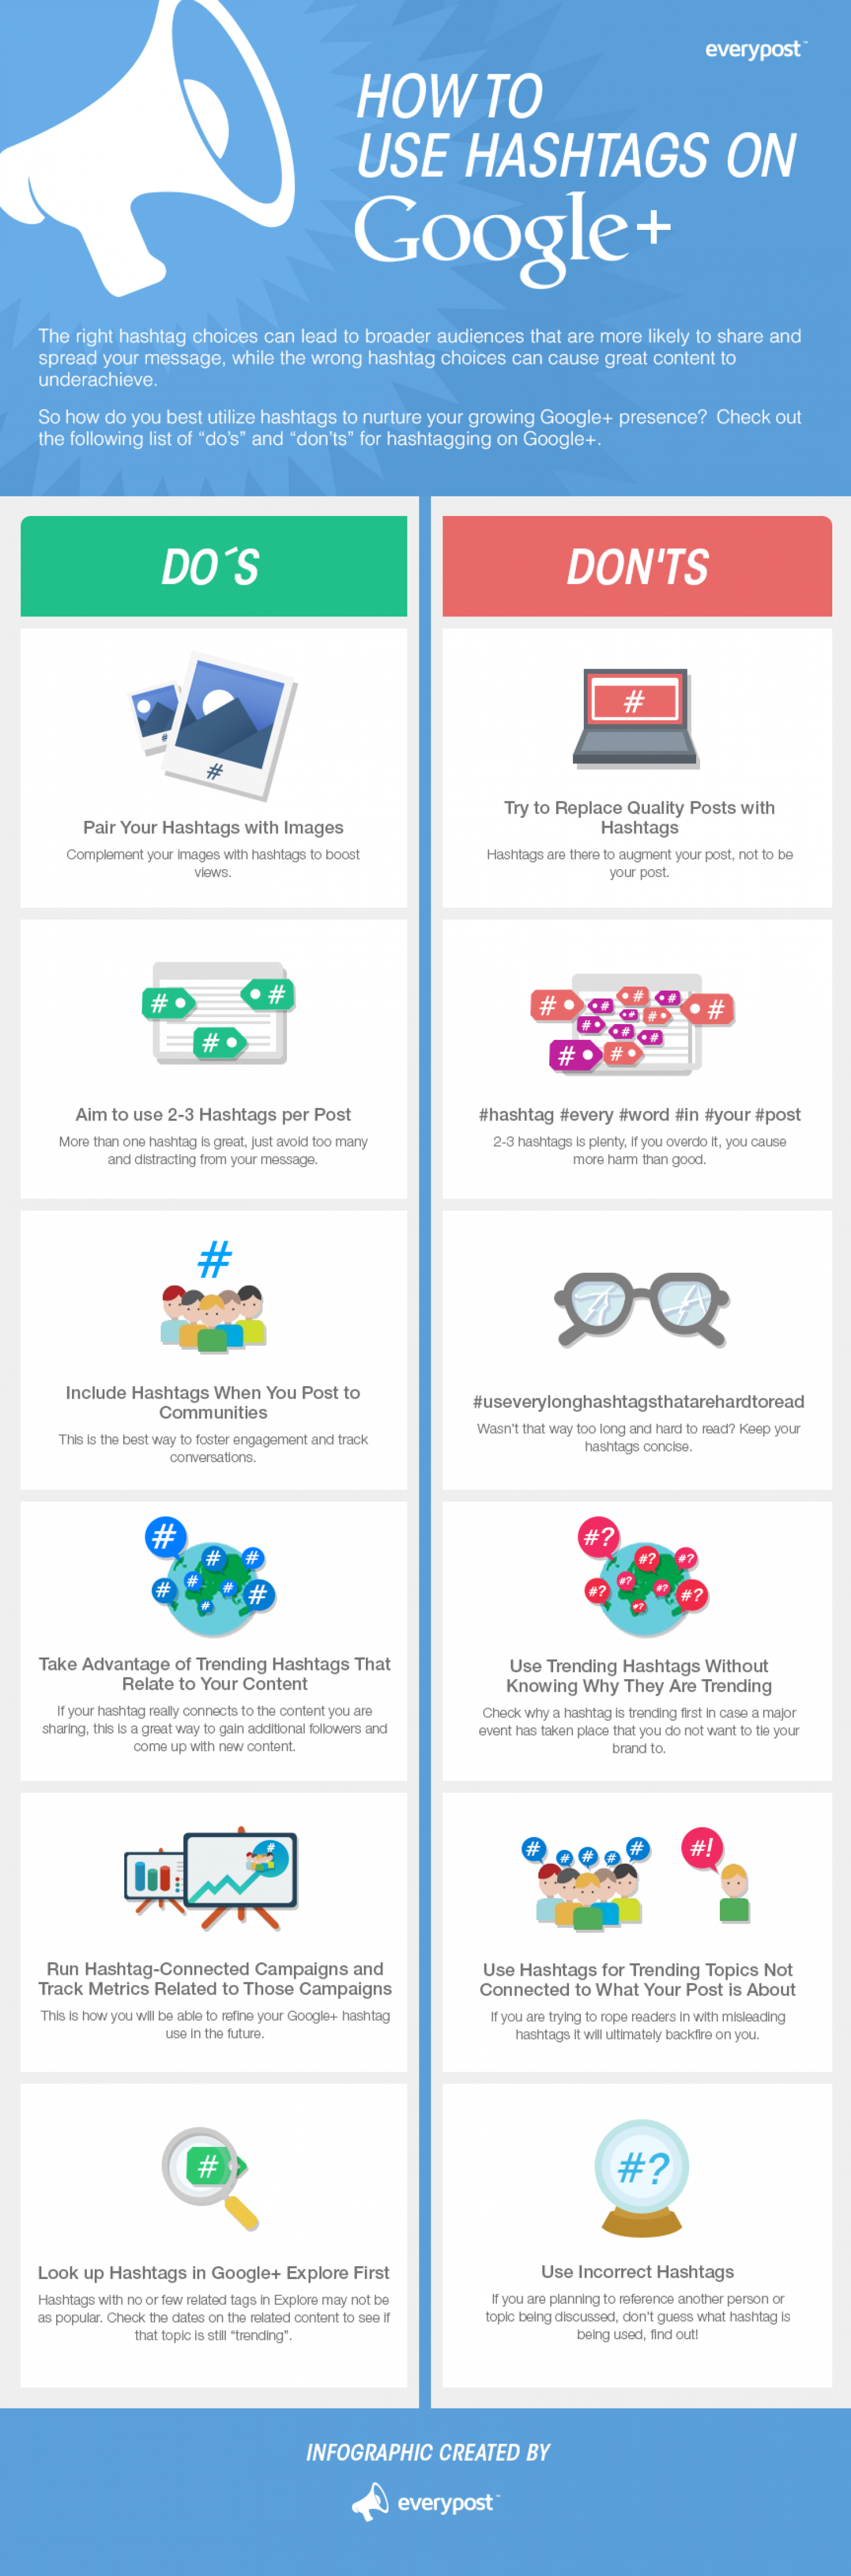 How to Use the Hashtags on Google Plus - The Do's and Don'ts (Infographic)